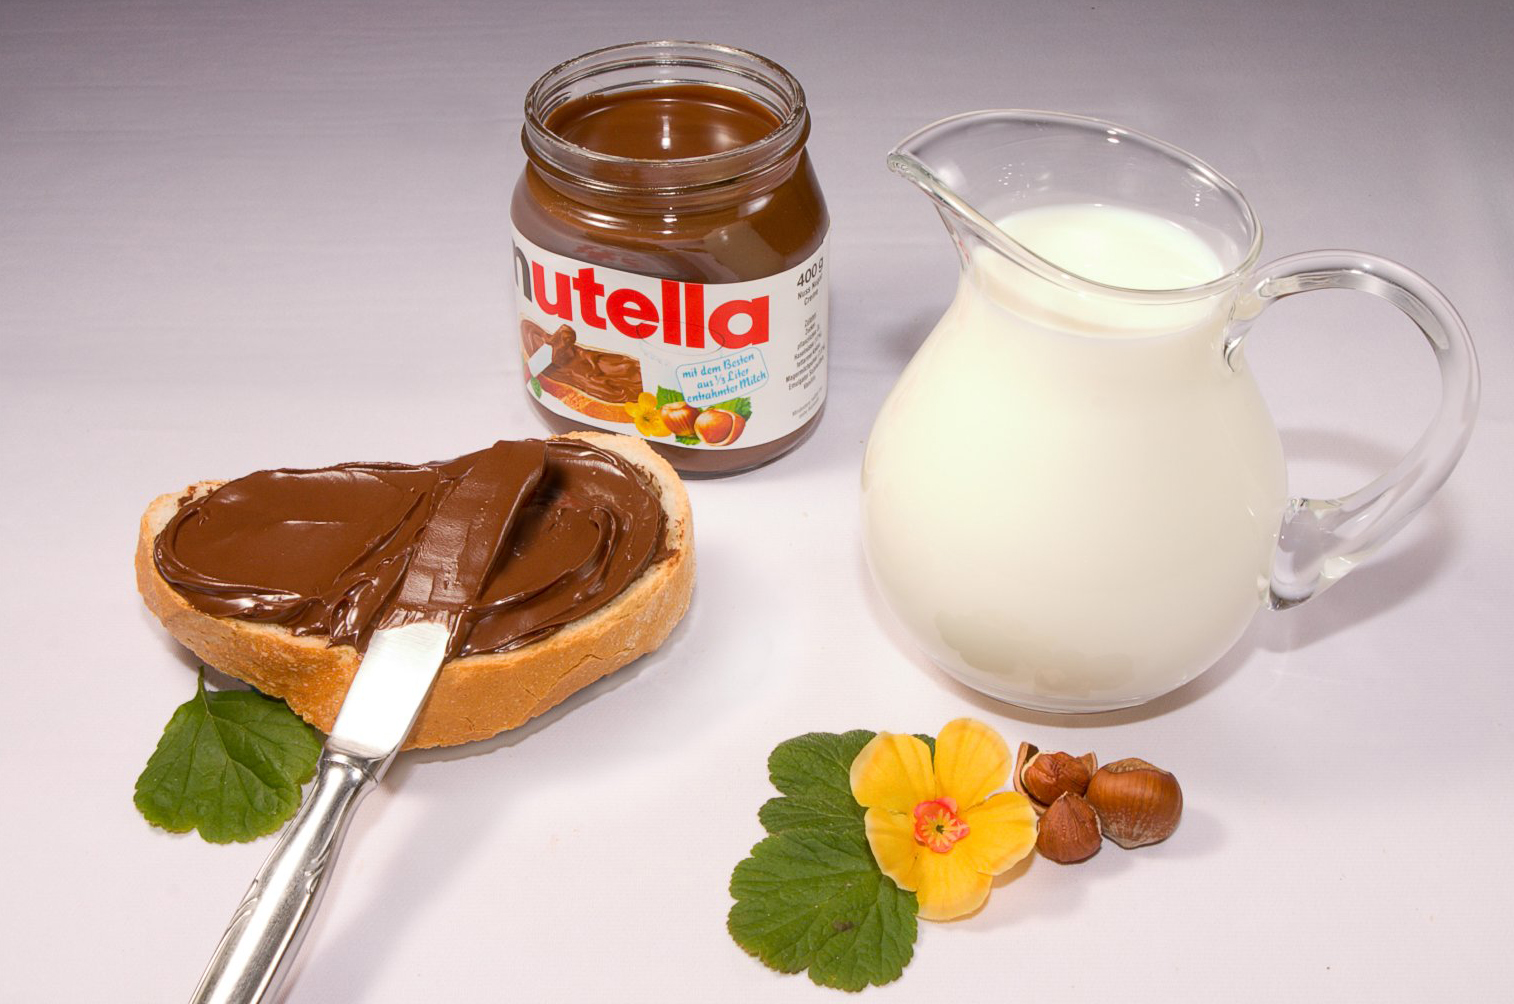 File:Nutella ak.jpg - Wikipedia